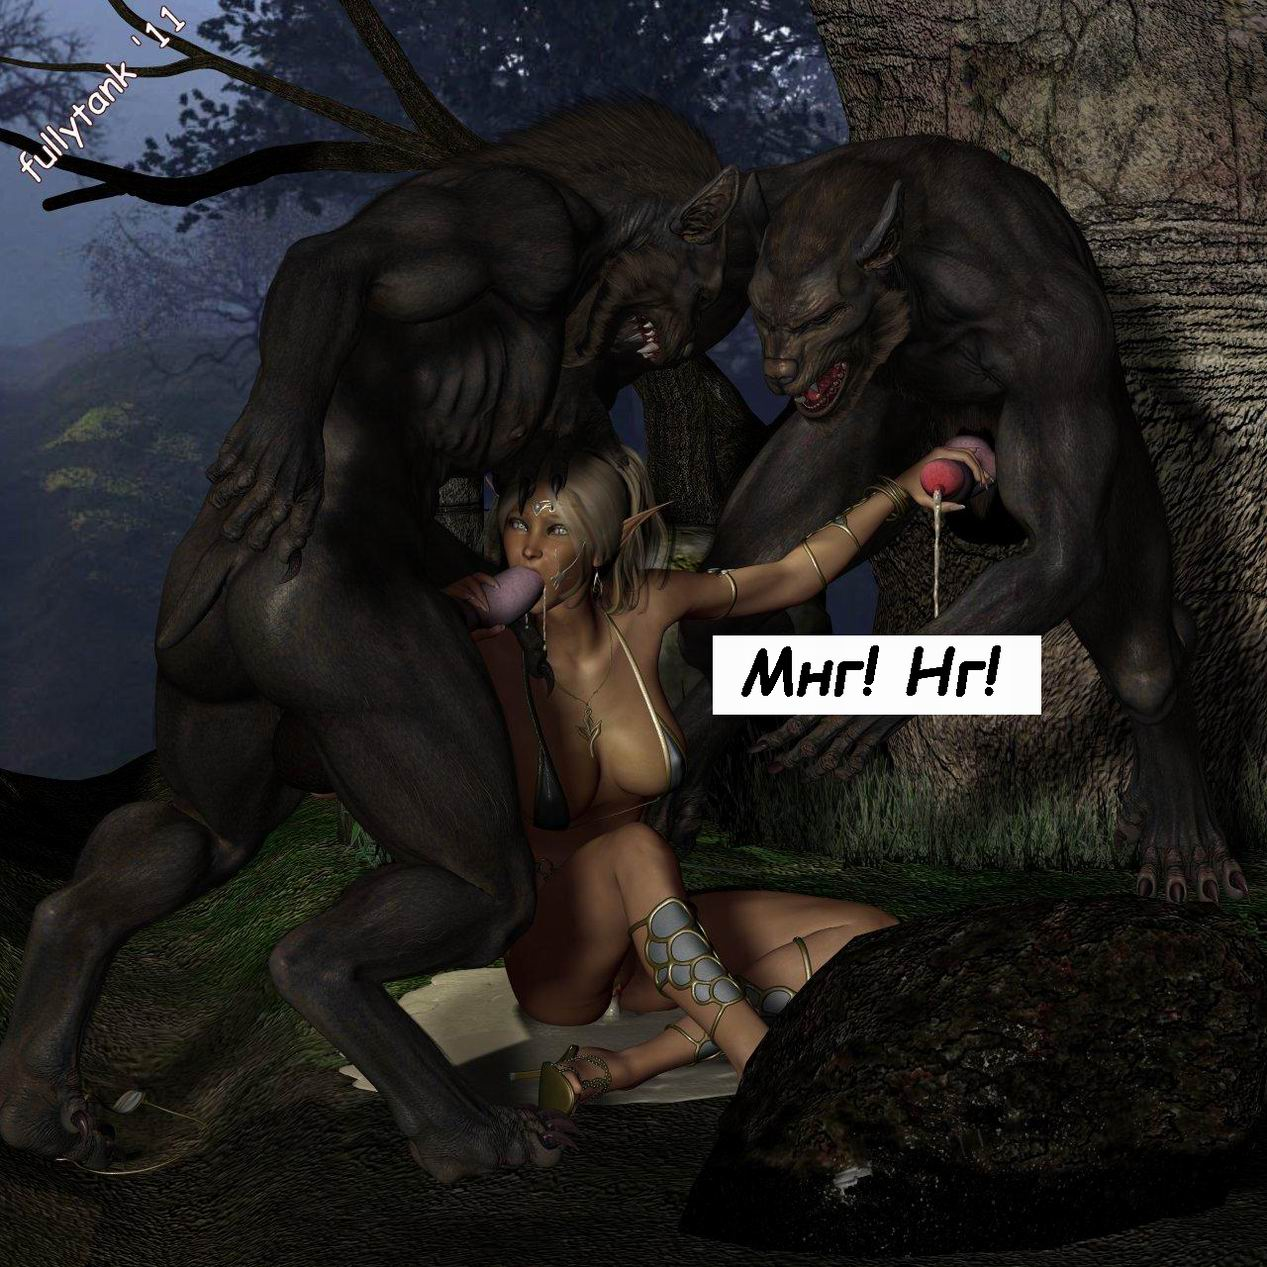 Werewolf sex art nude gallery